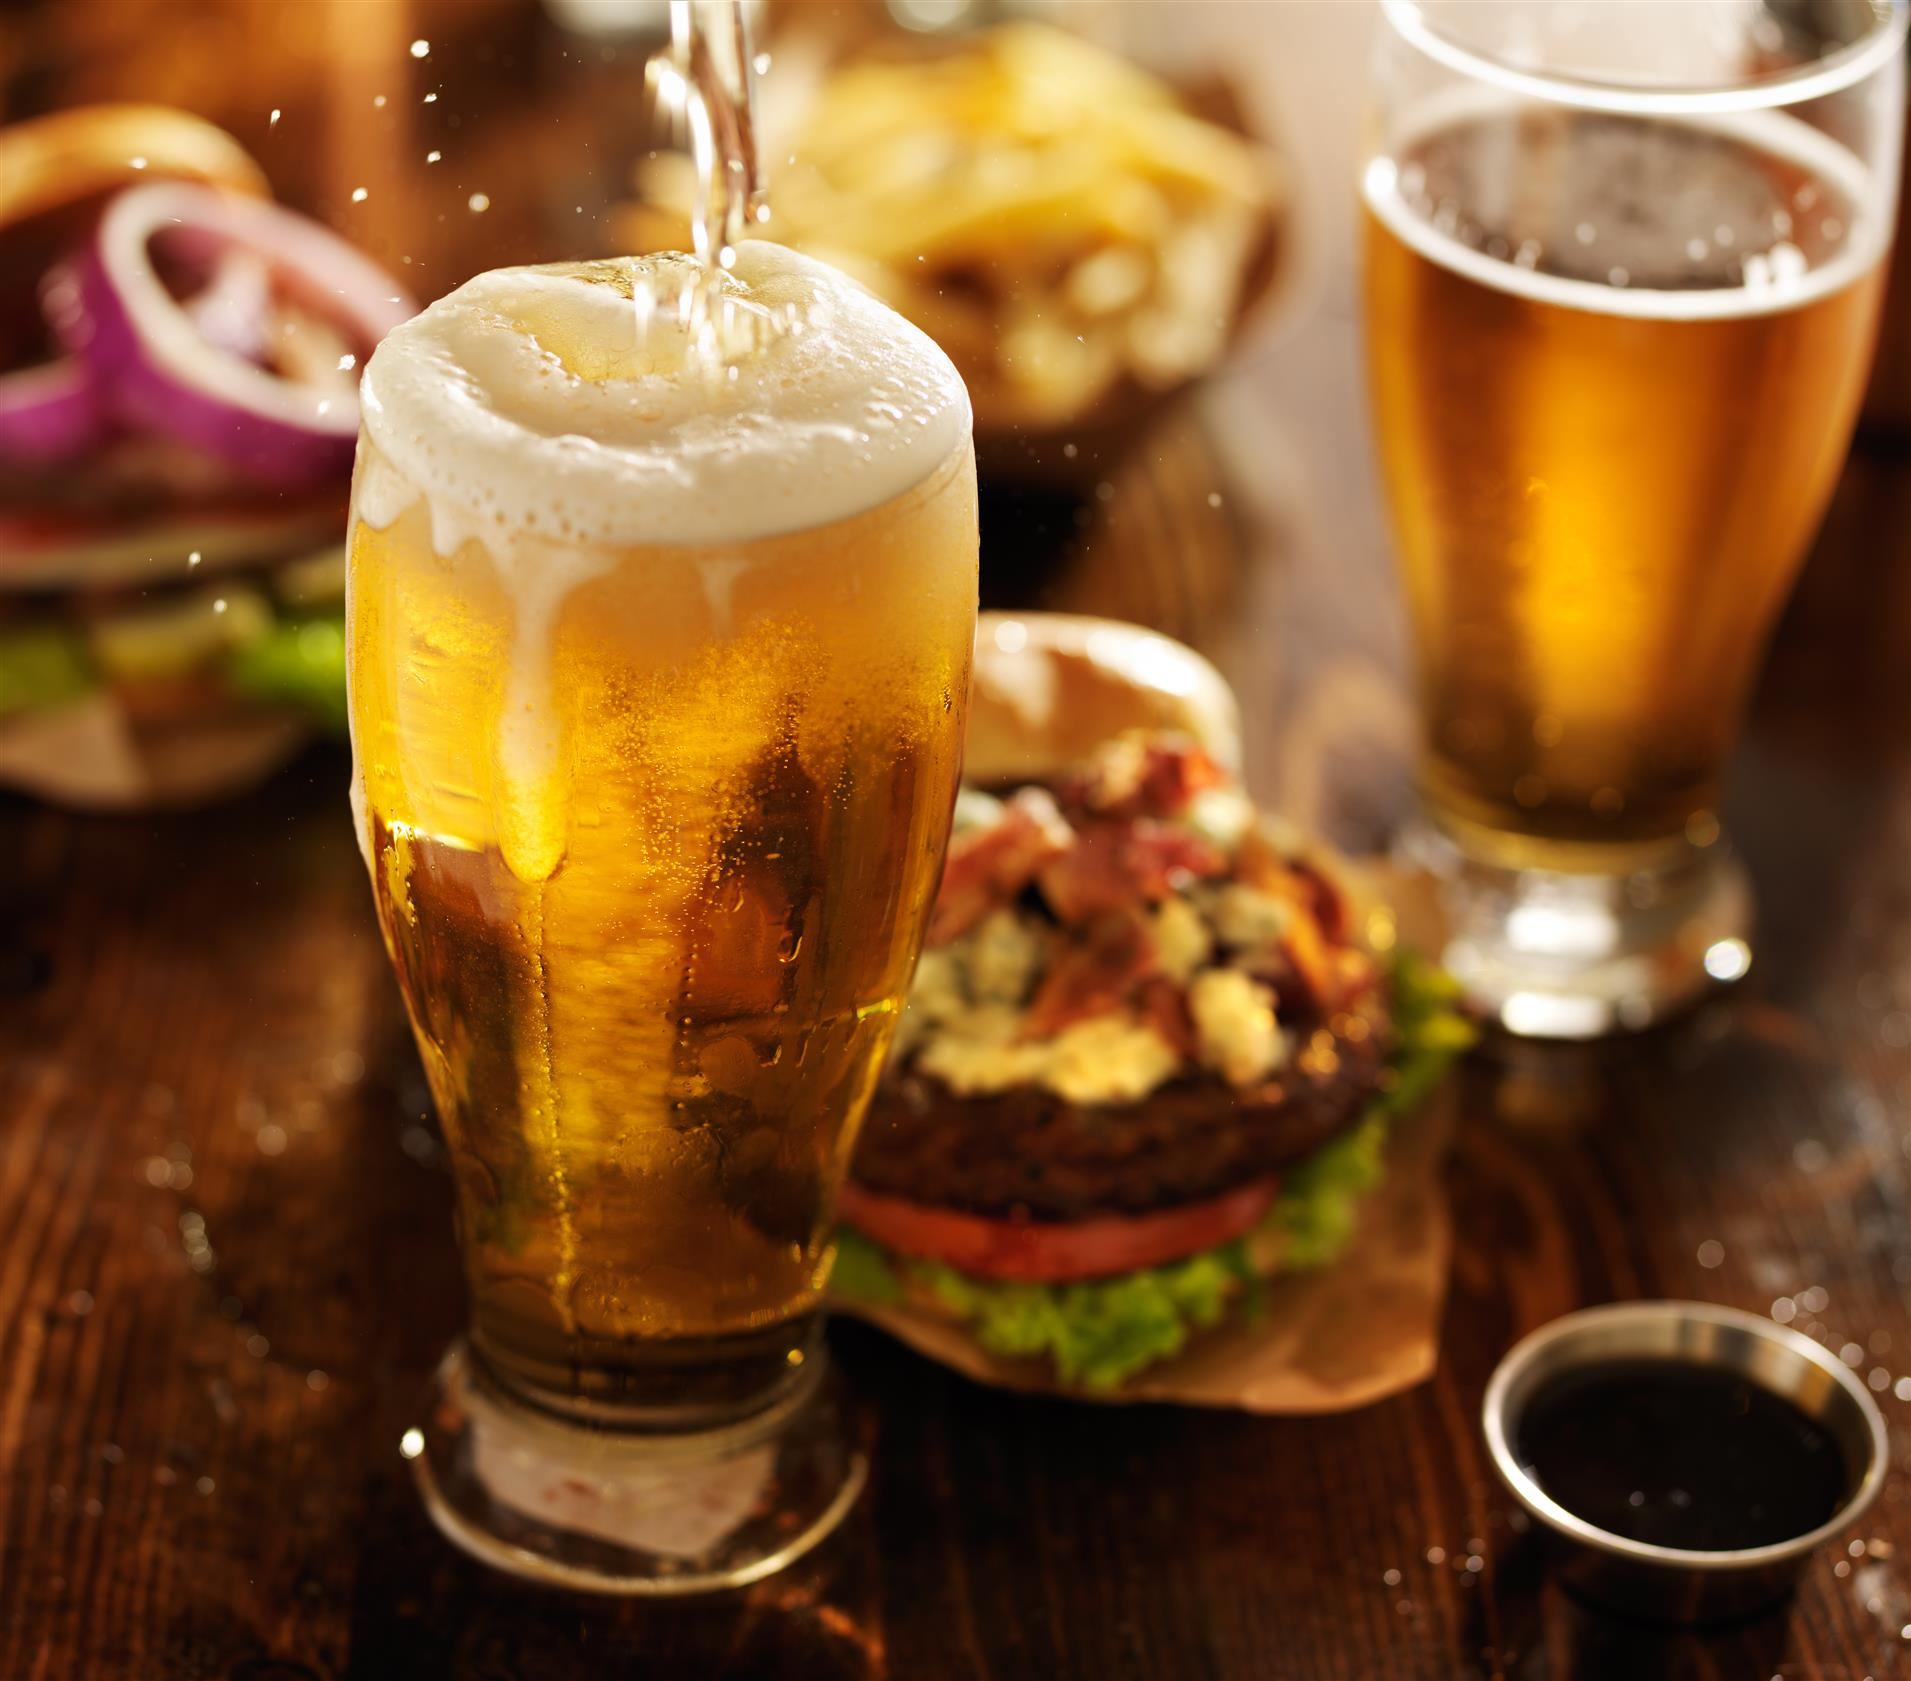 hamburger with a glass of beer and beer being poured into another glass